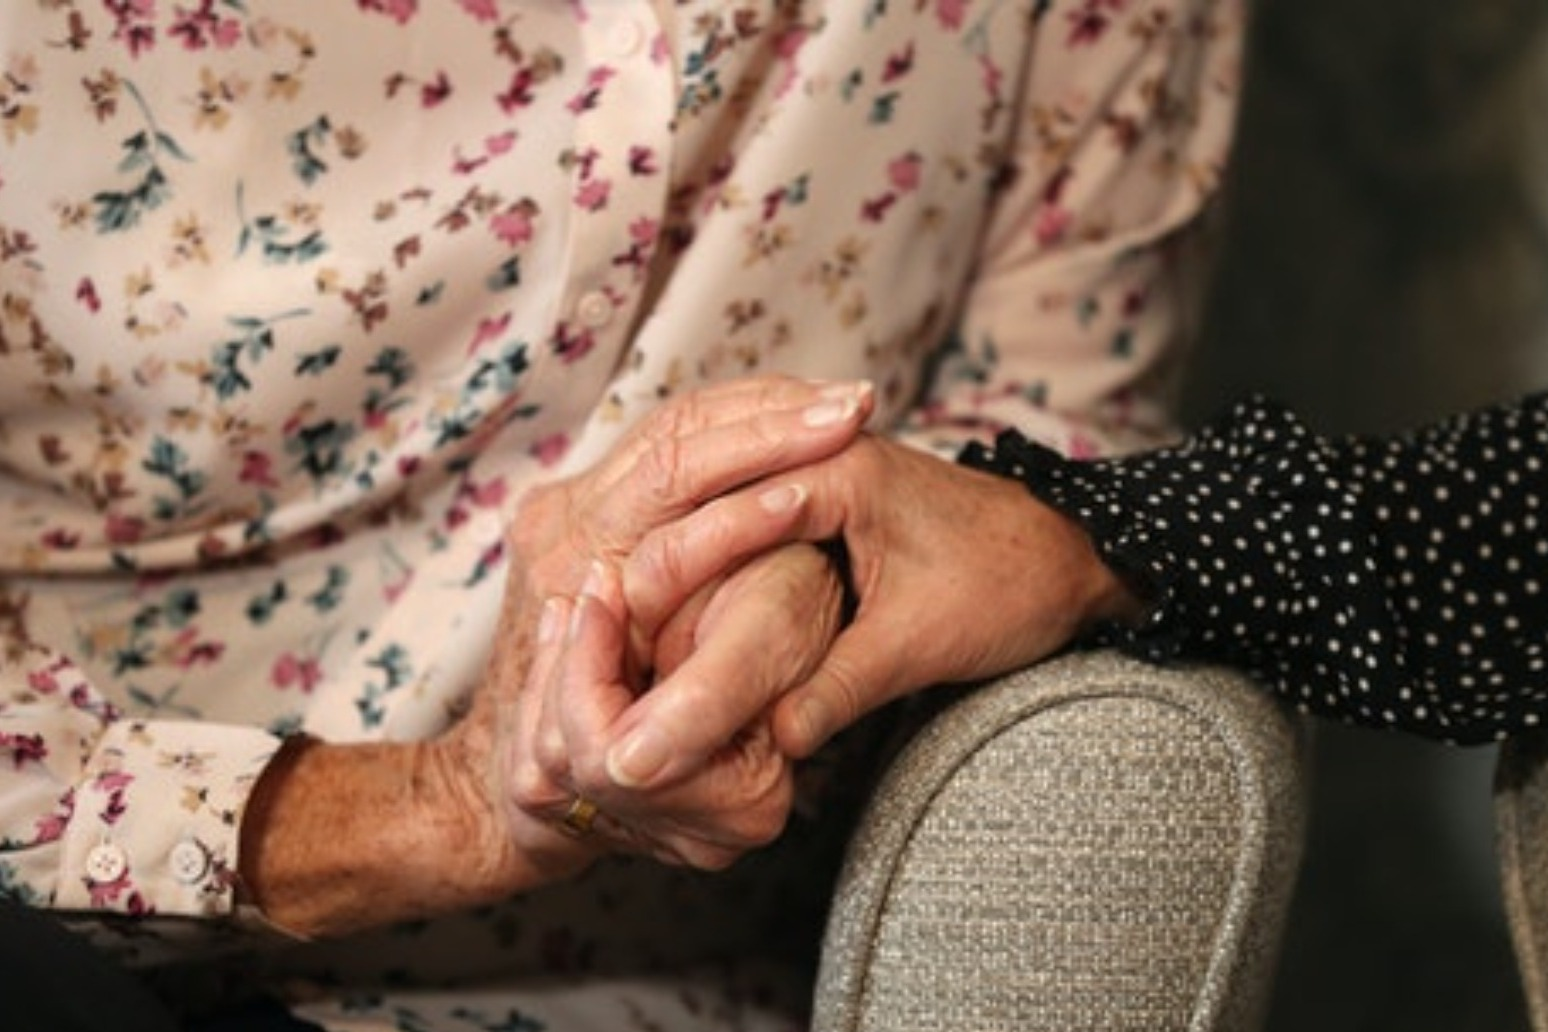 Care home residents top the list for newly approved Covid-19 jab